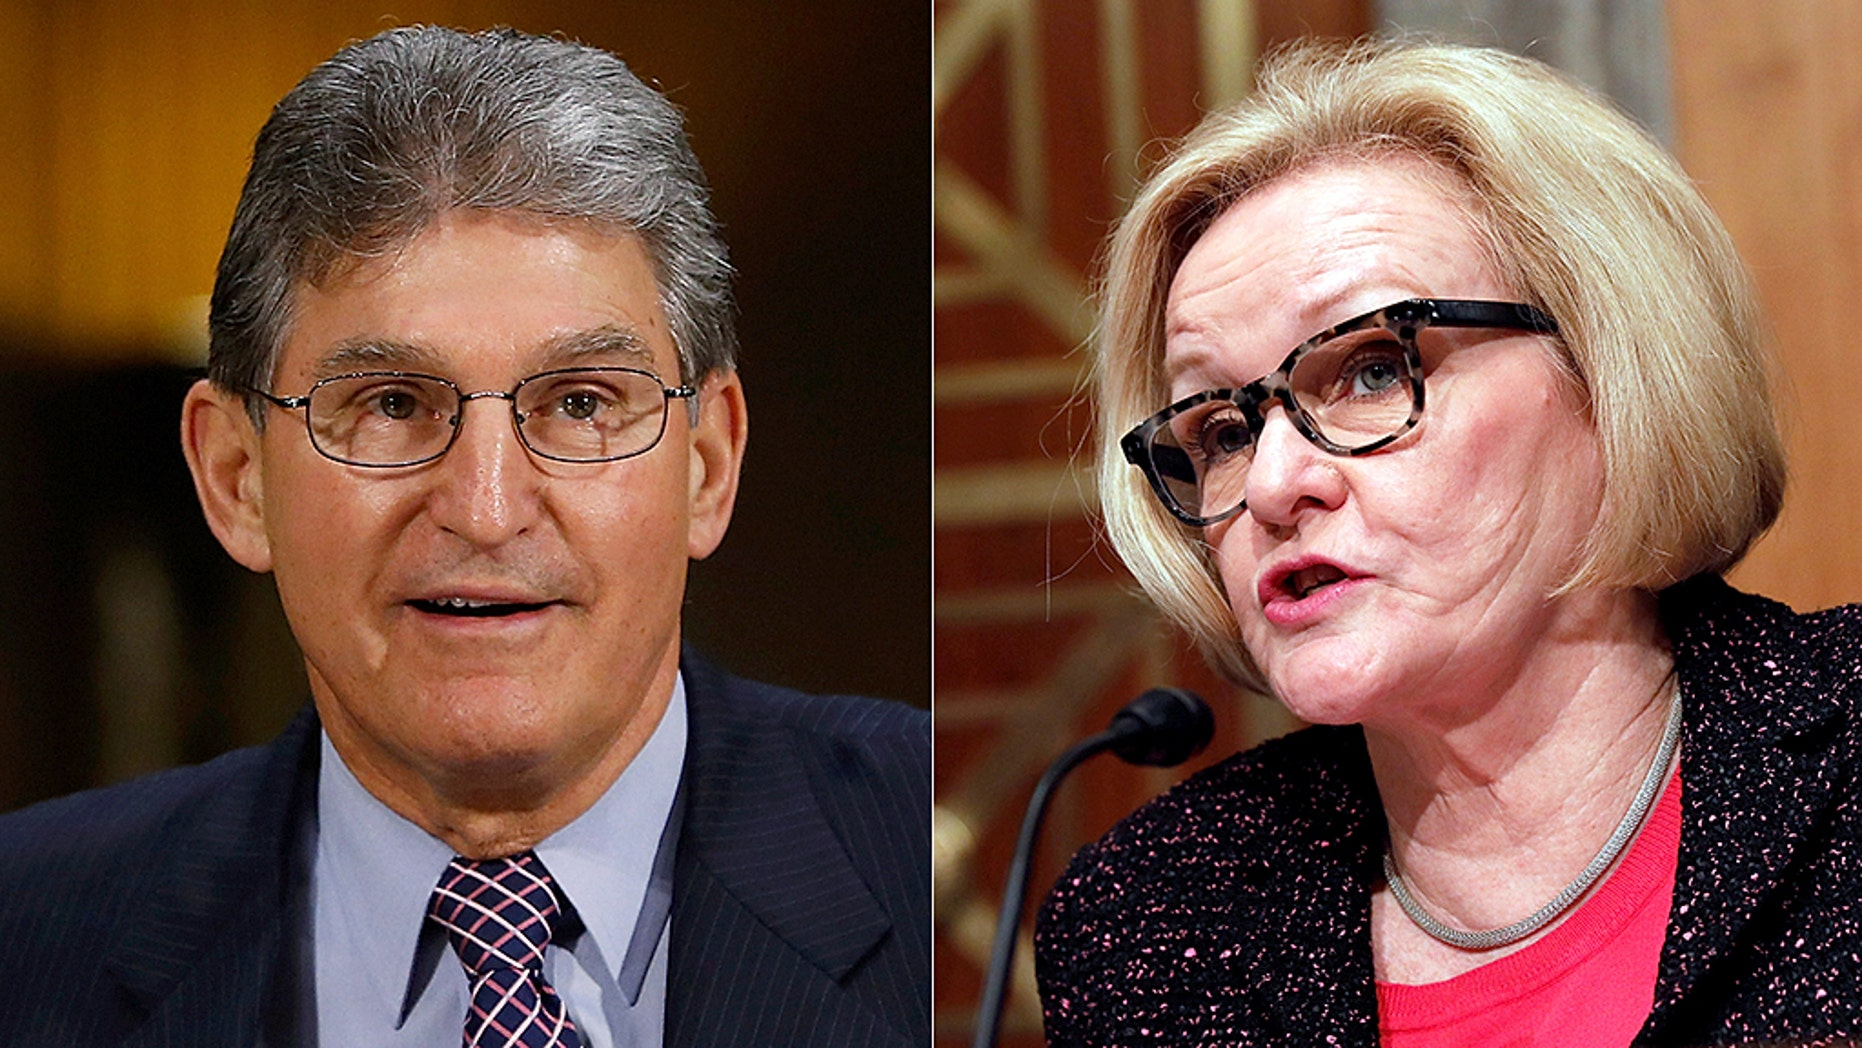 Sen. Joe Manchin accidentally cracked Democratic Sen. Claire McCaskill's rib while performing the Heimlich maneuver at a caucus luncheon.